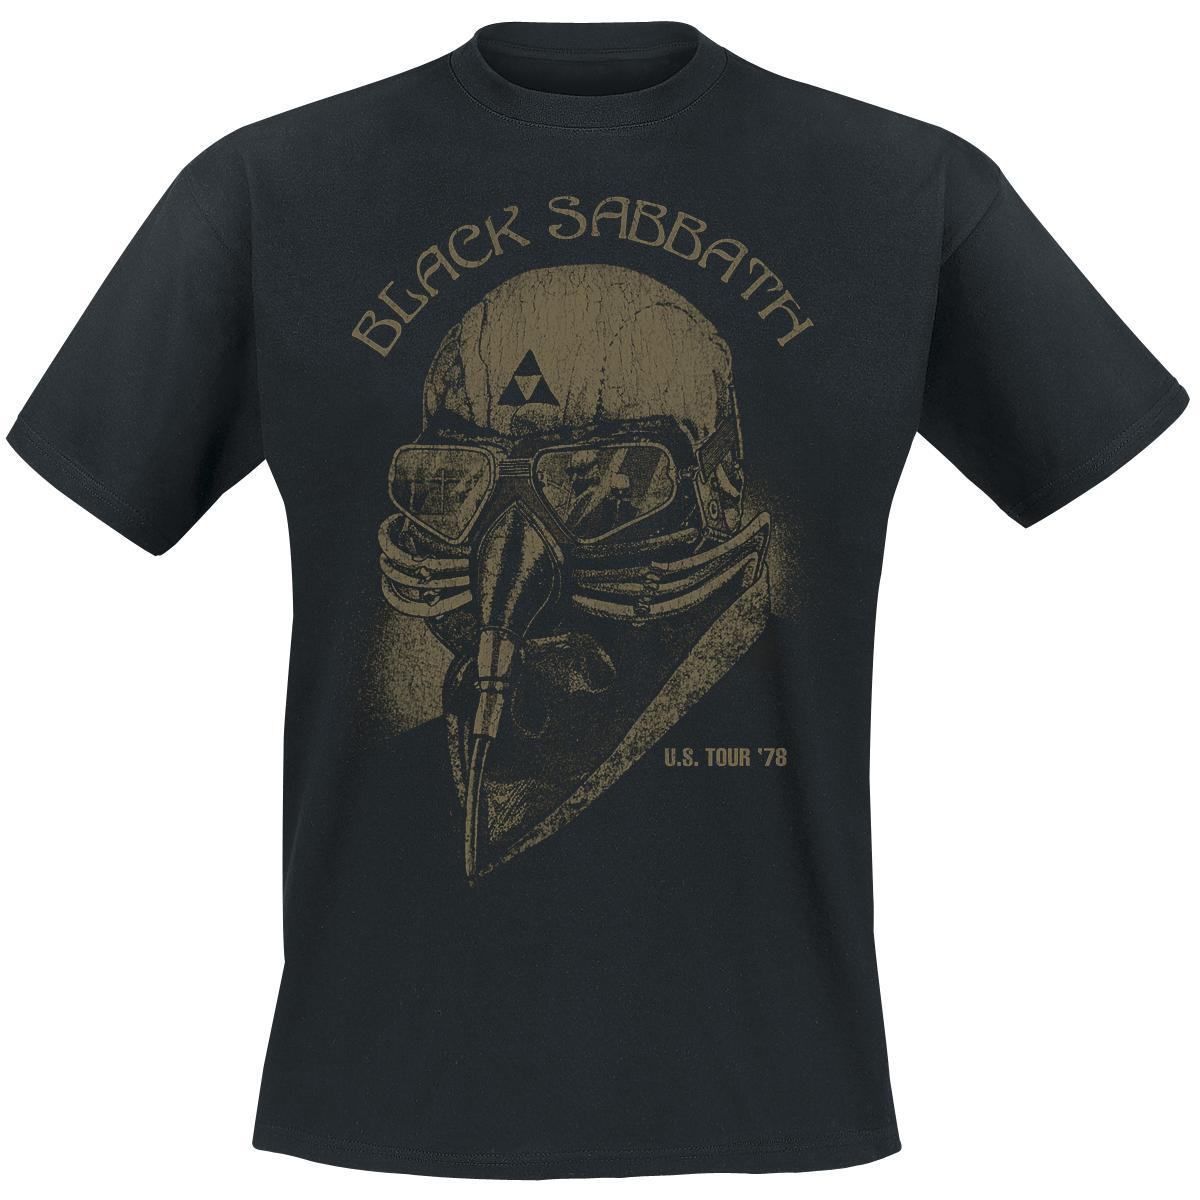 Black sabbath t shirt iron man - Black Sabbath